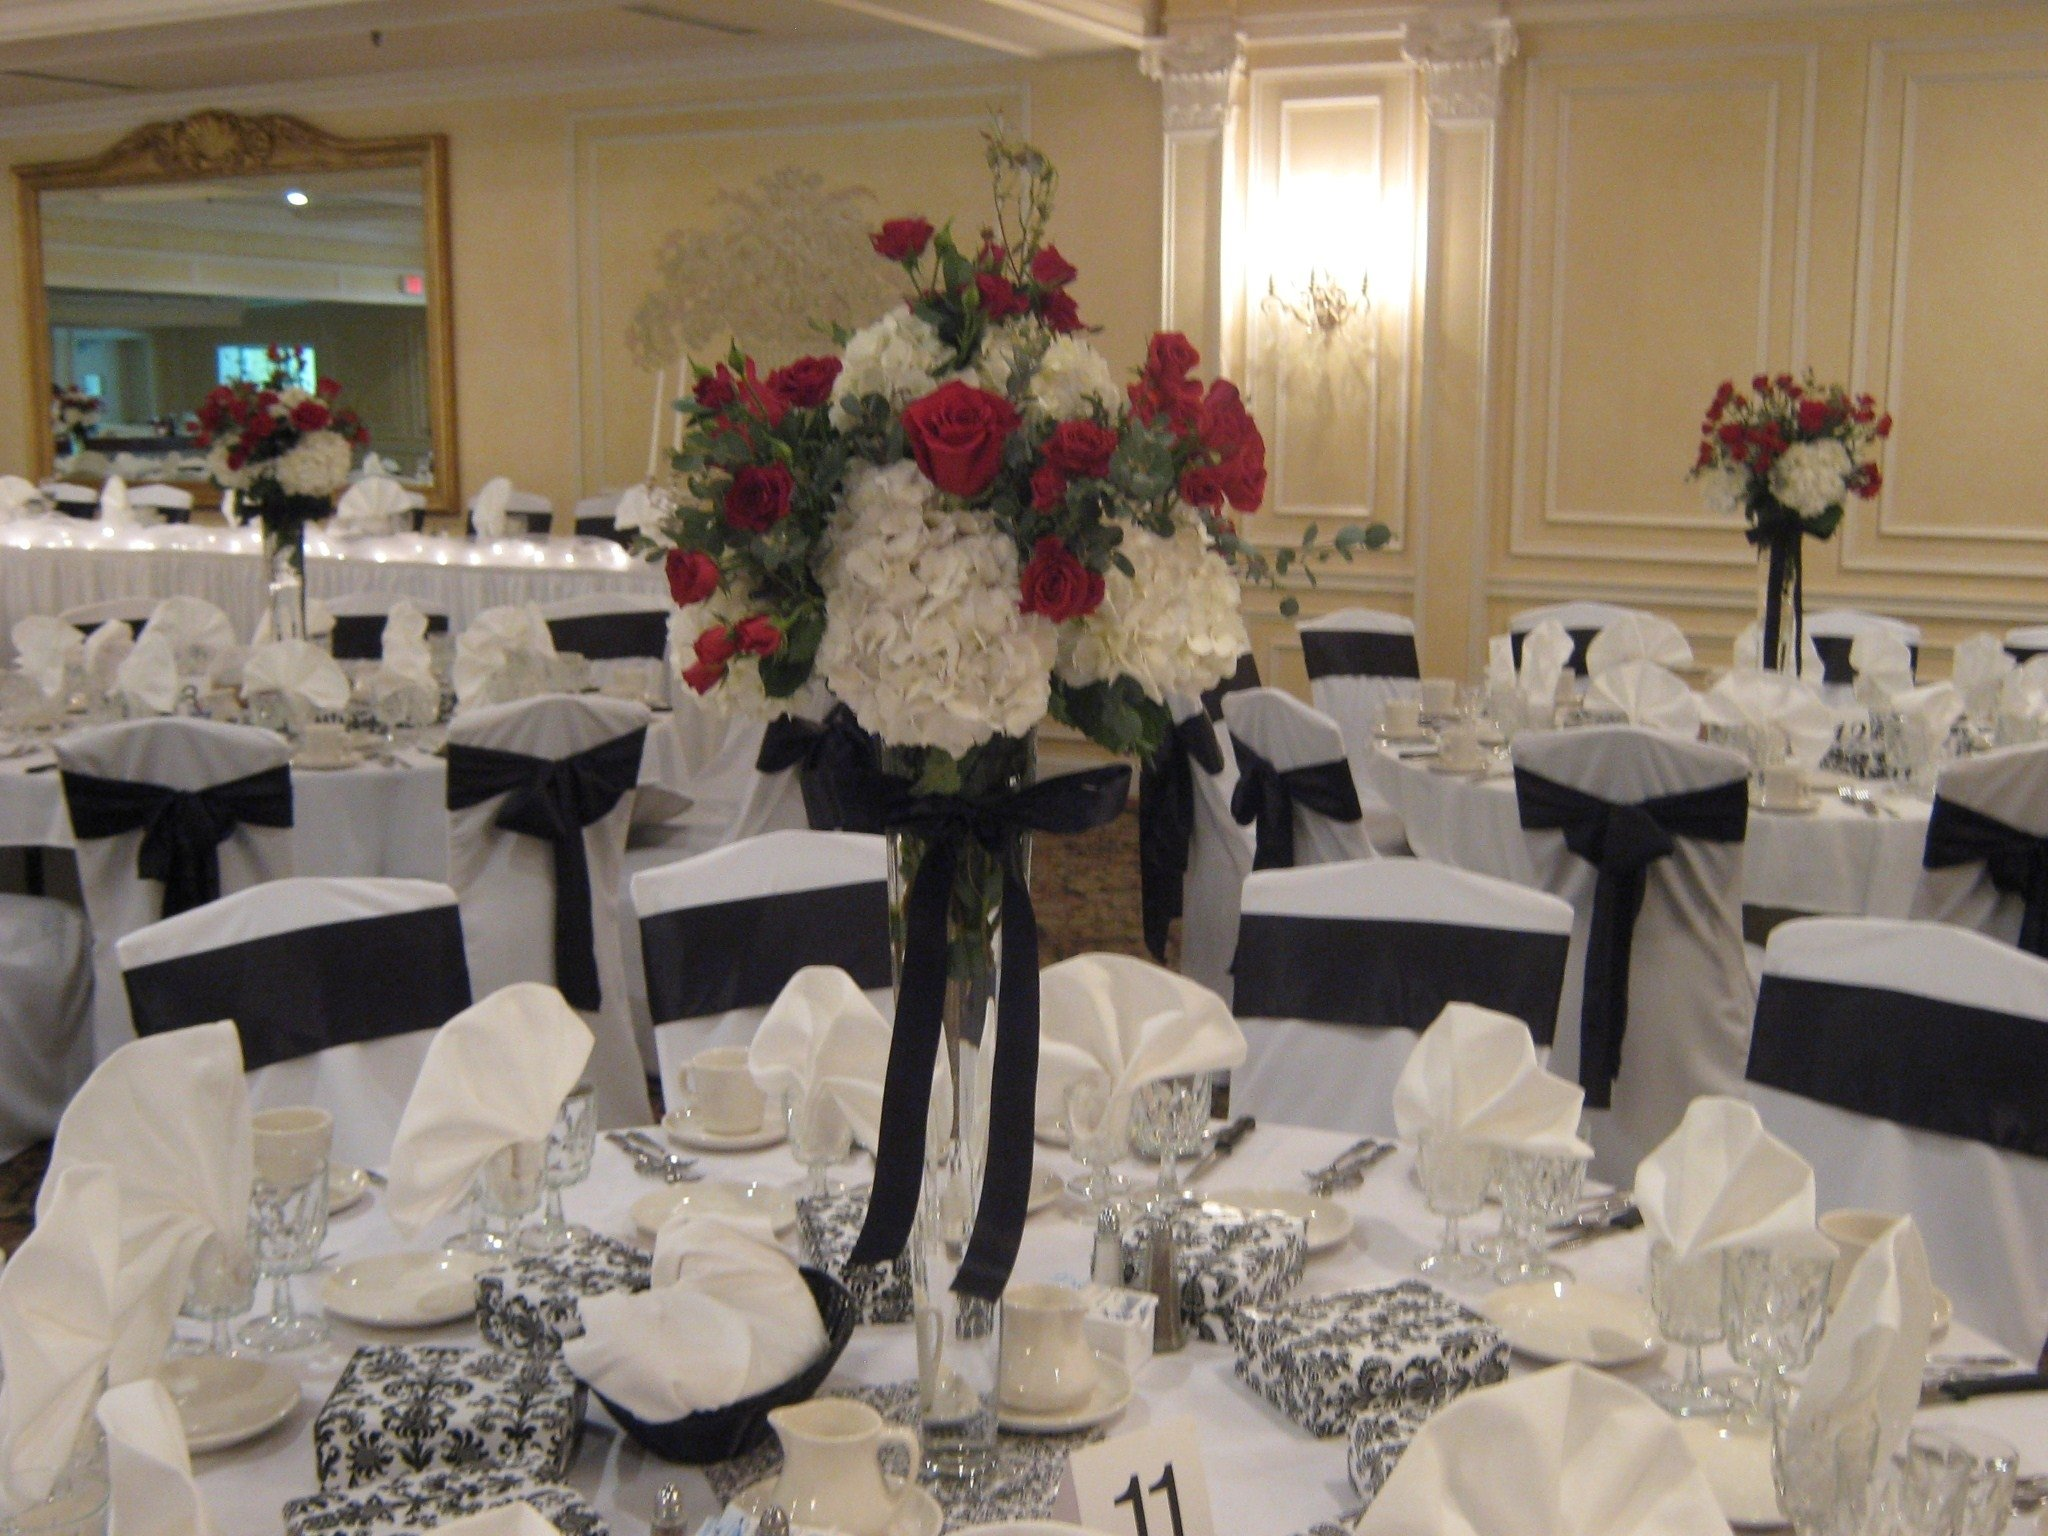 10 Unique Wedding Flowers And Reception Ideas gorgeous unique wedding reception ideas on a budget decor 50th 2 2020